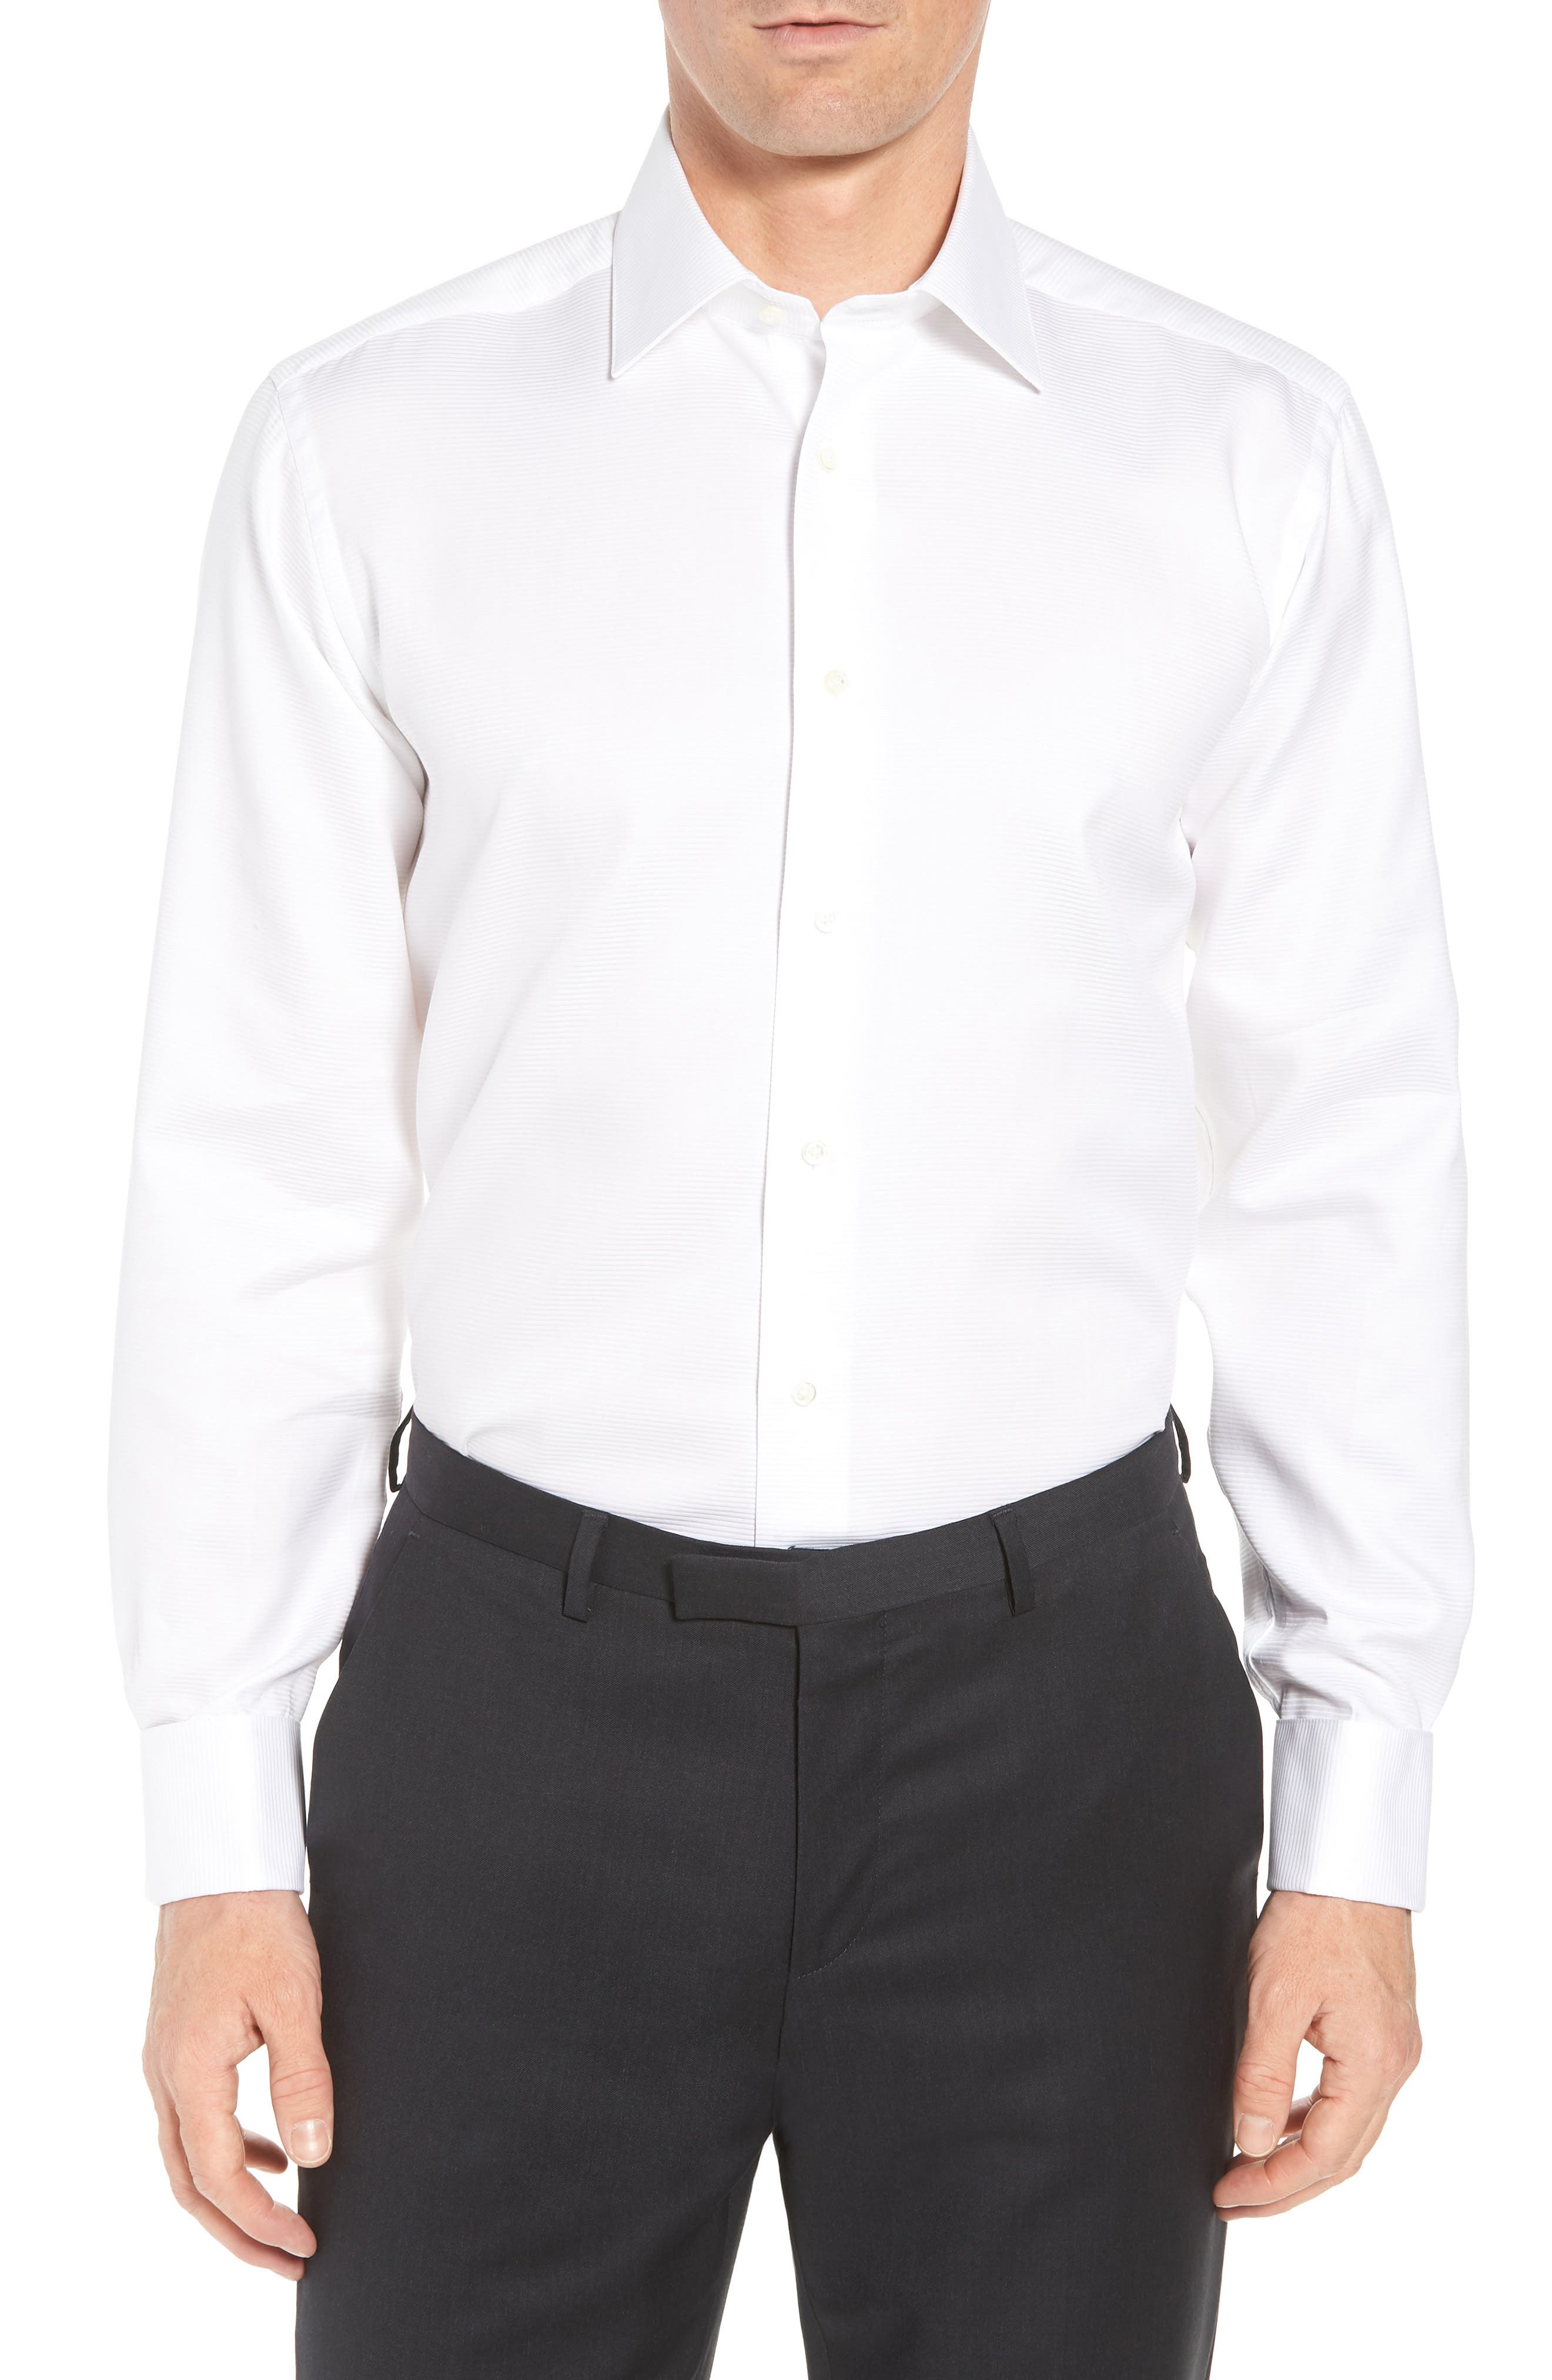 DAVID DONAHUE Horizontal Twill Regular Fit Tuxedo Shirt, Main, color, WHITE